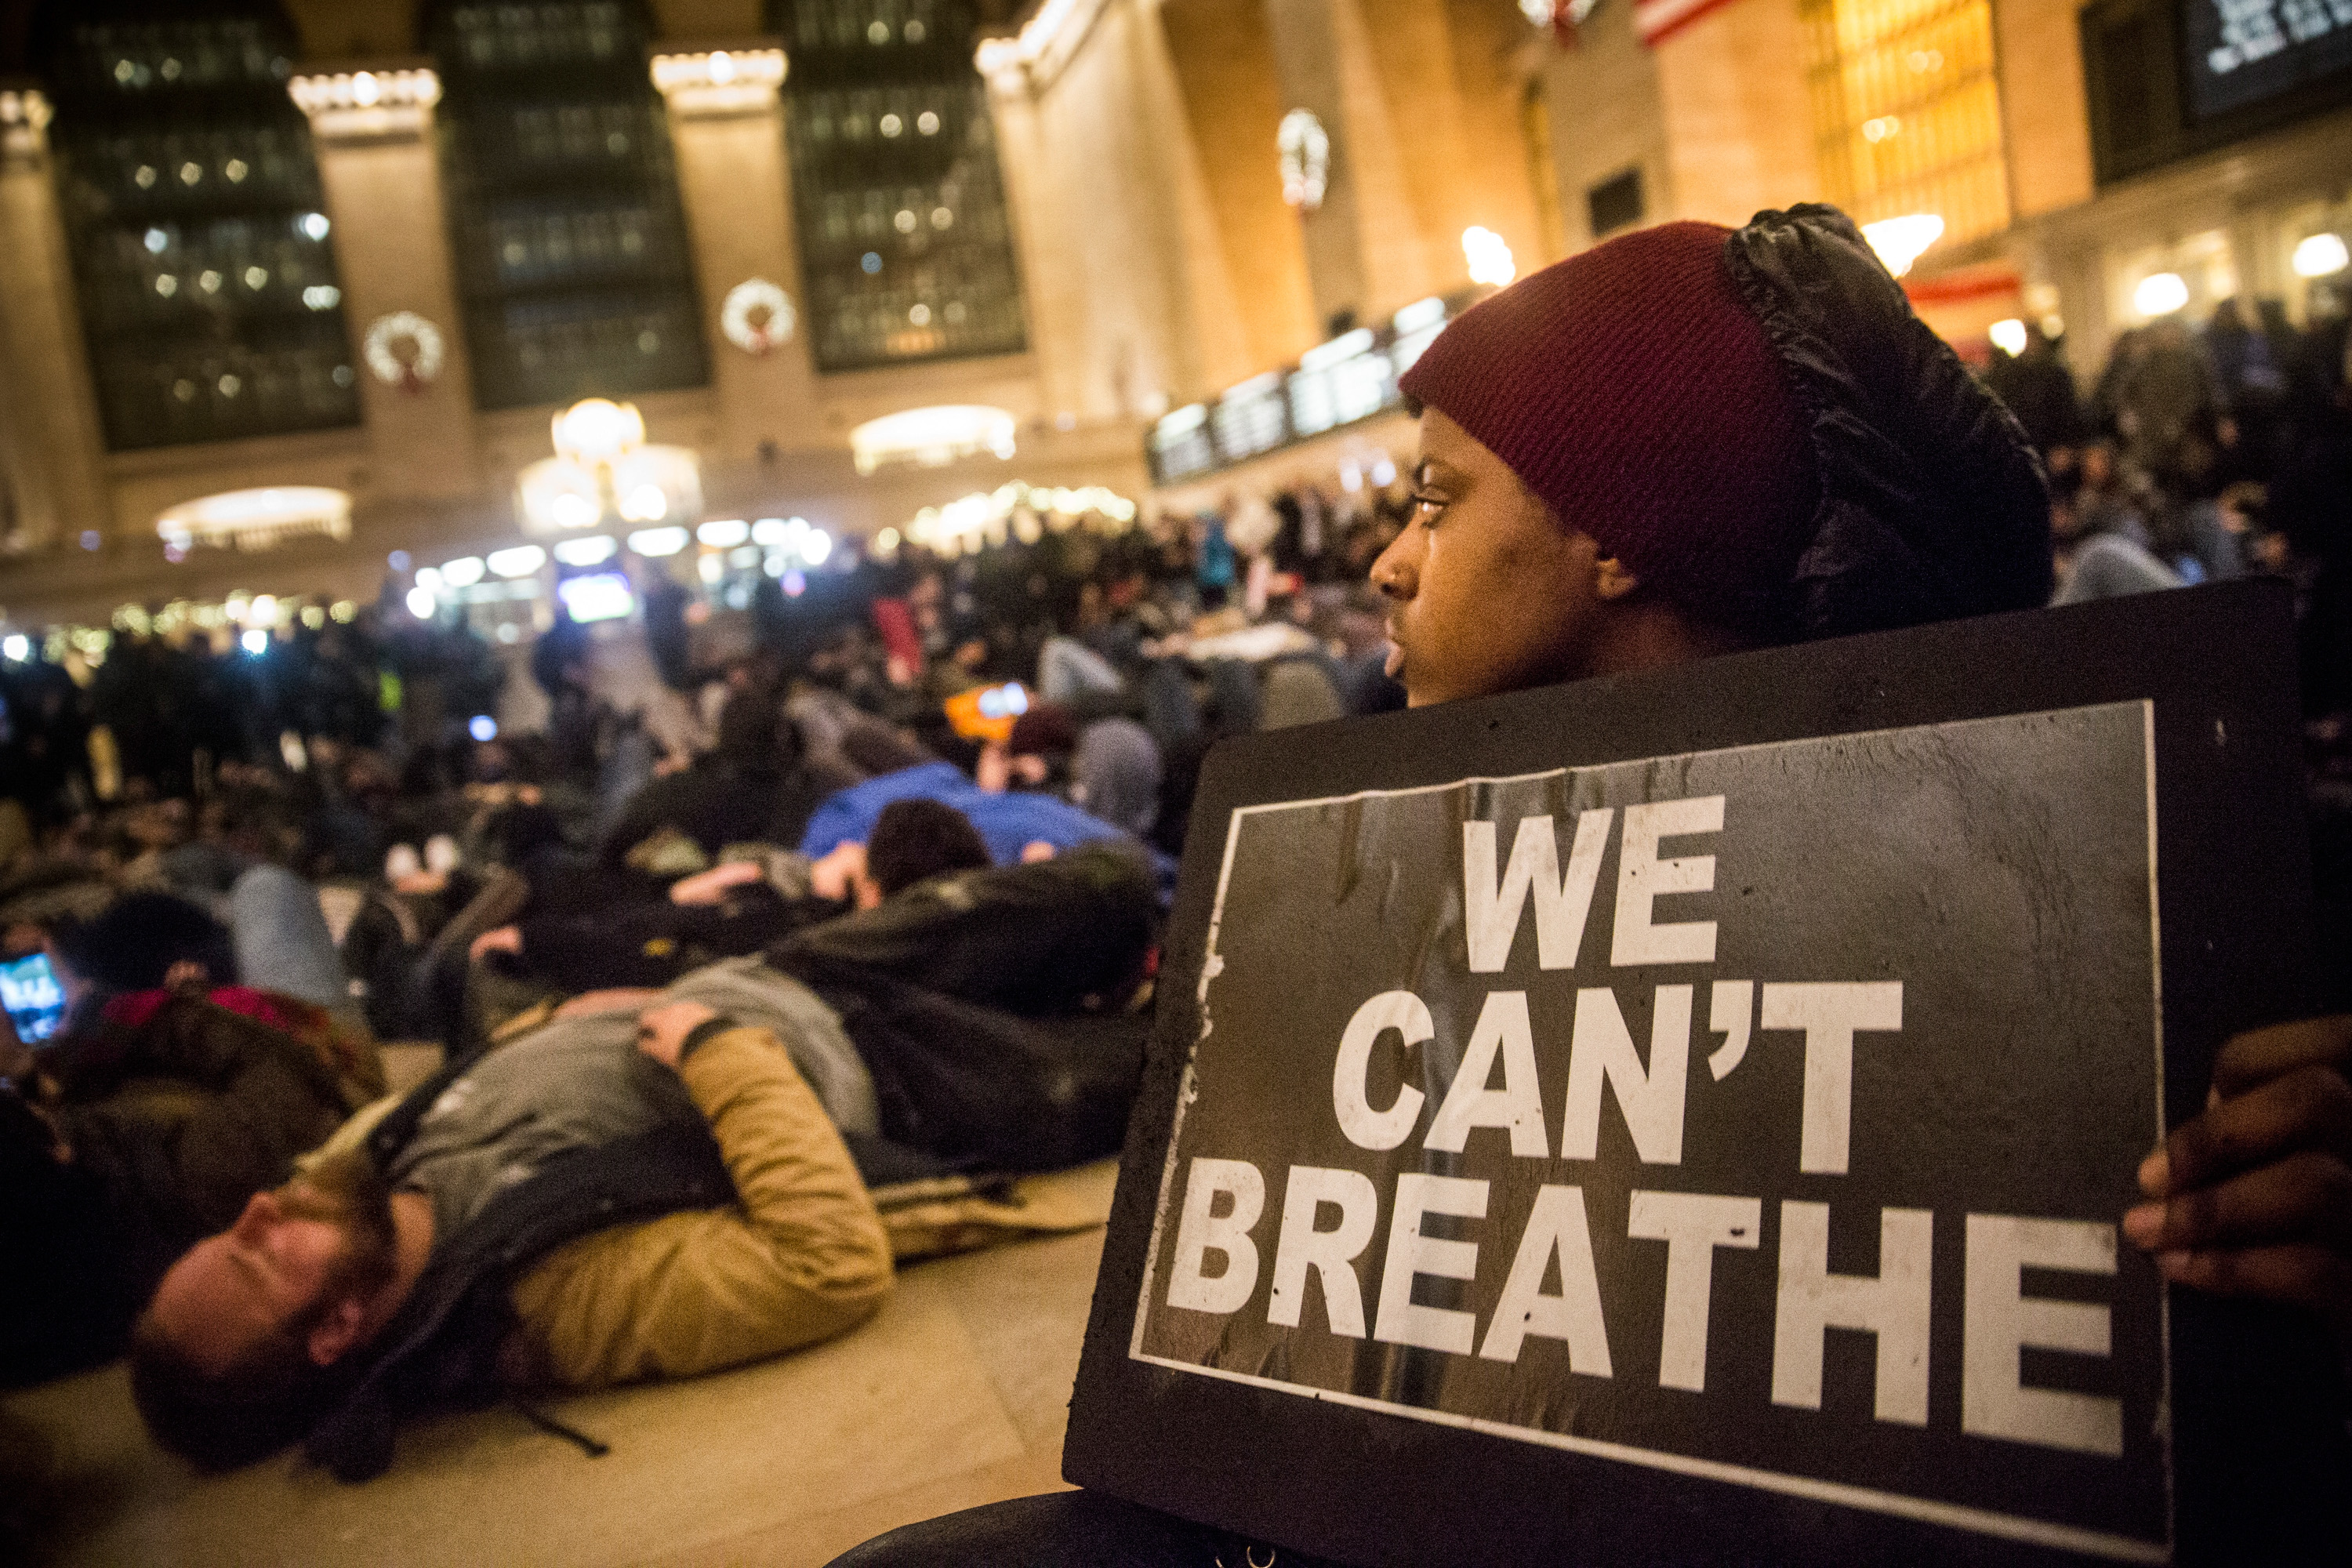 Demonstrators hold a die-in in Grand Central Terminal protesting the Staten Island, New York grand jury's decision not to indict a police officer involved in the chokehold death of Eric Garner in July on December 5, 2014 in New York City. The grand jury declined to indict New York City Police Officer Daniel Pantaleo in Garner's death. (Photo by Andrew Burton/Getty Images)